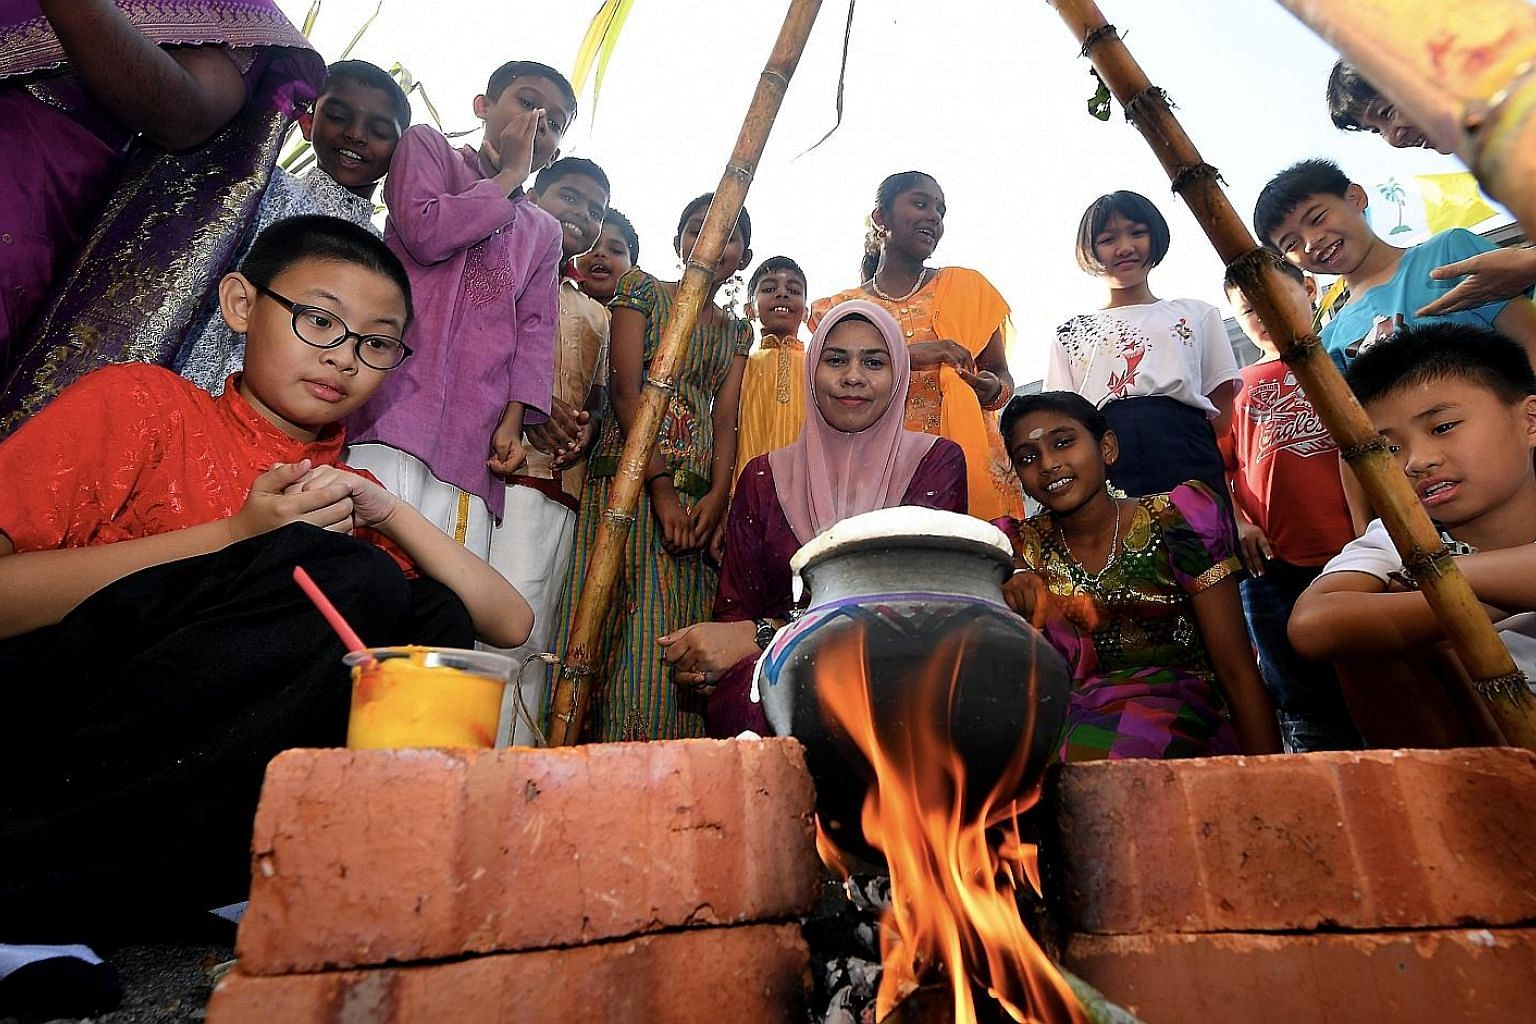 Students and staff of a school in Penang during Pongal celebrations last Friday. The Tamil festival was at the centre of recent race-baiting issues in which the Malaysian Cabinet had to intervene.